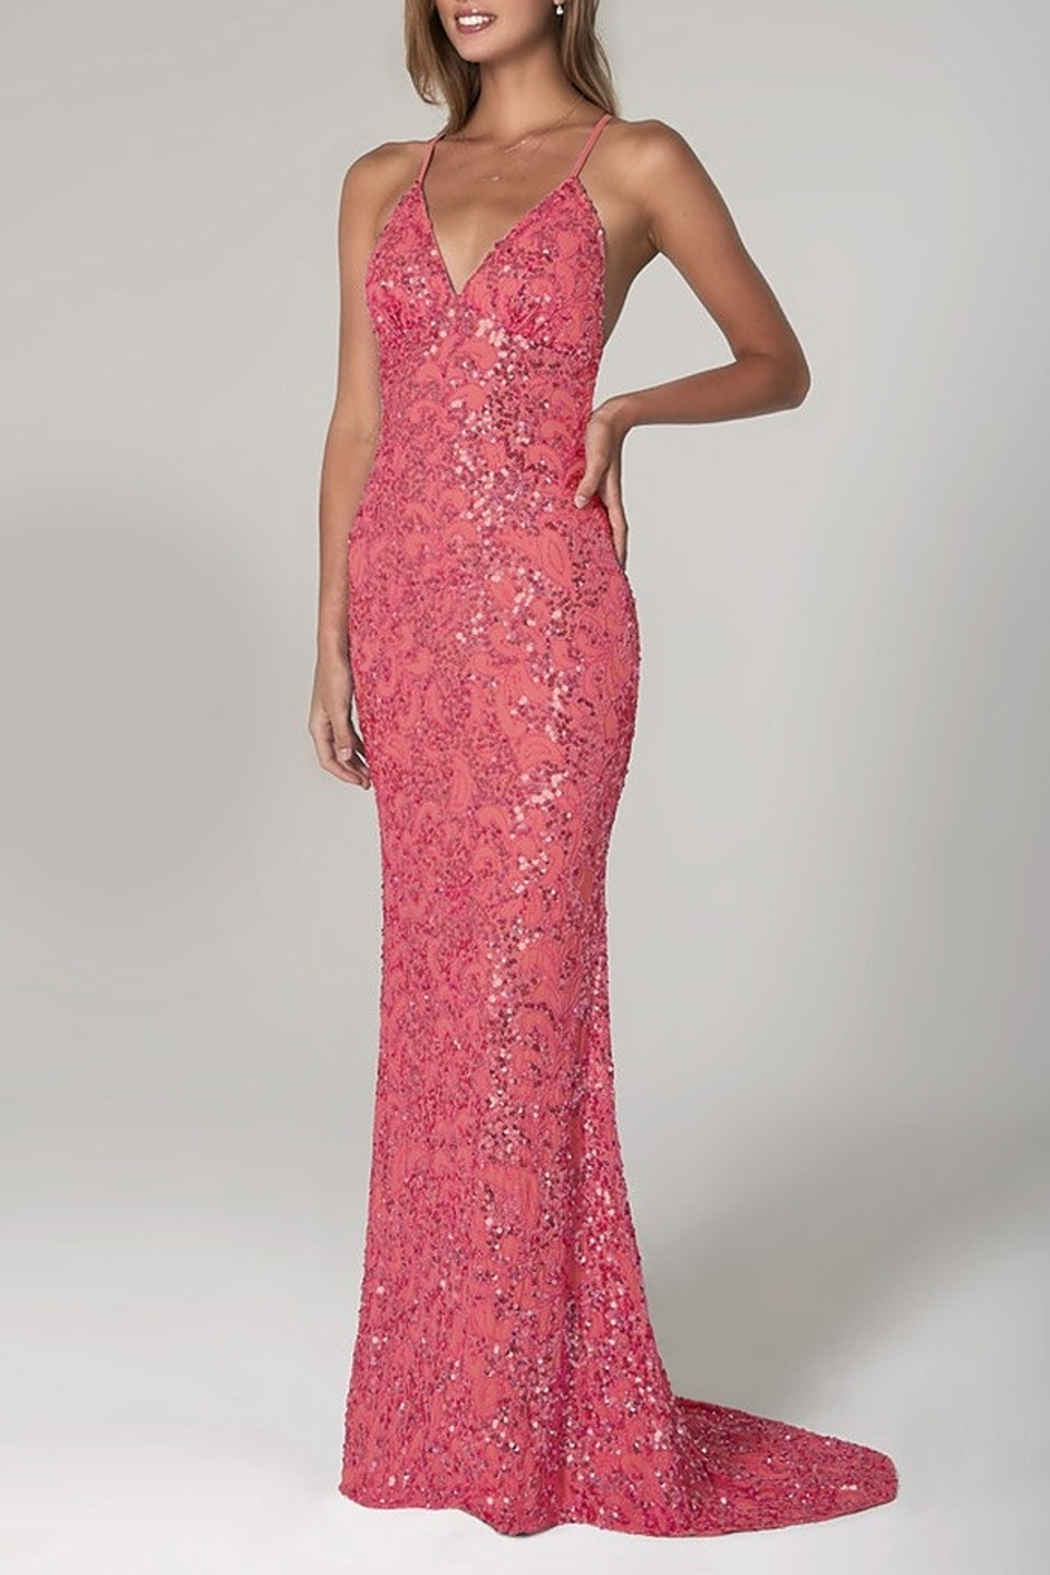 Scala Beaded Paisley Gown w/Low Crisscross Back - Main Image